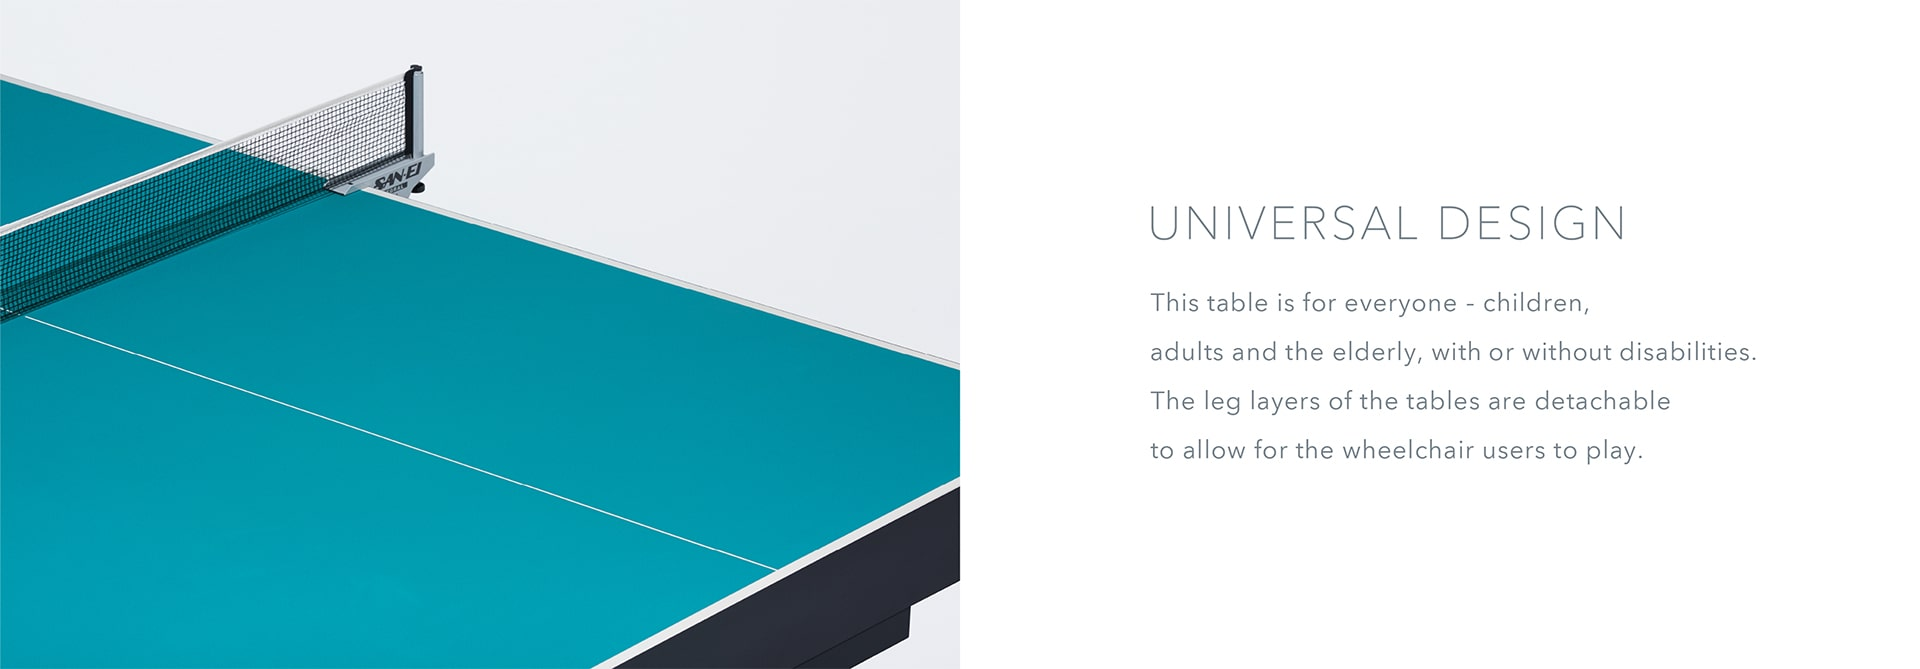 Universal Design This table is for everyone—children, adults and the elderly, with or without disabilities. The leg layers of the tables are detachable to allow for the wheelchair users to play. Stand in front of these tables and experience the world of para athletes.